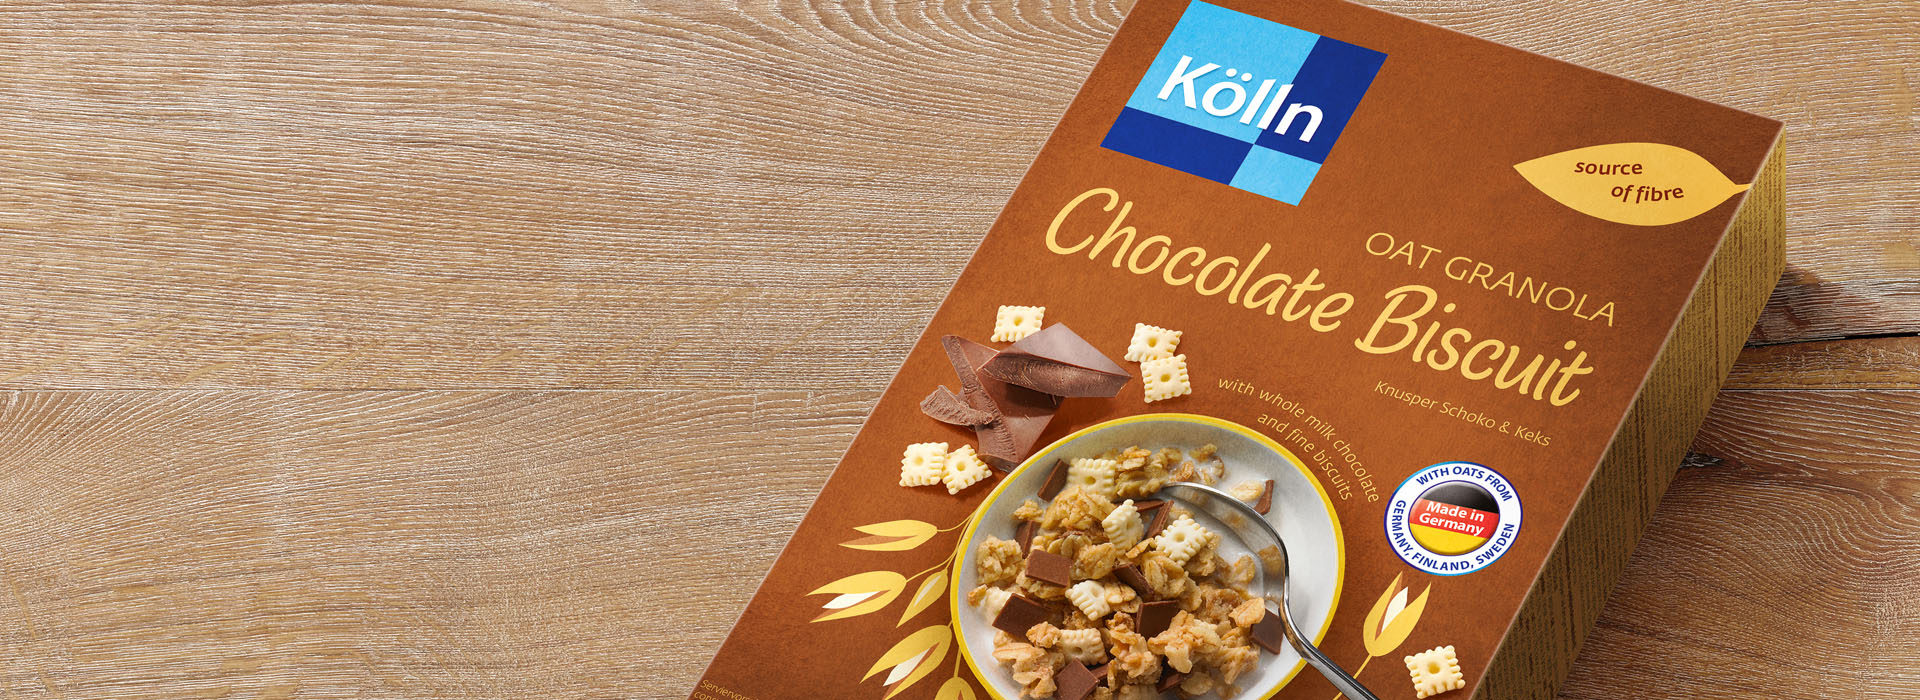 Koelln Oat Granola Chocolate Biscuit Pack on Table